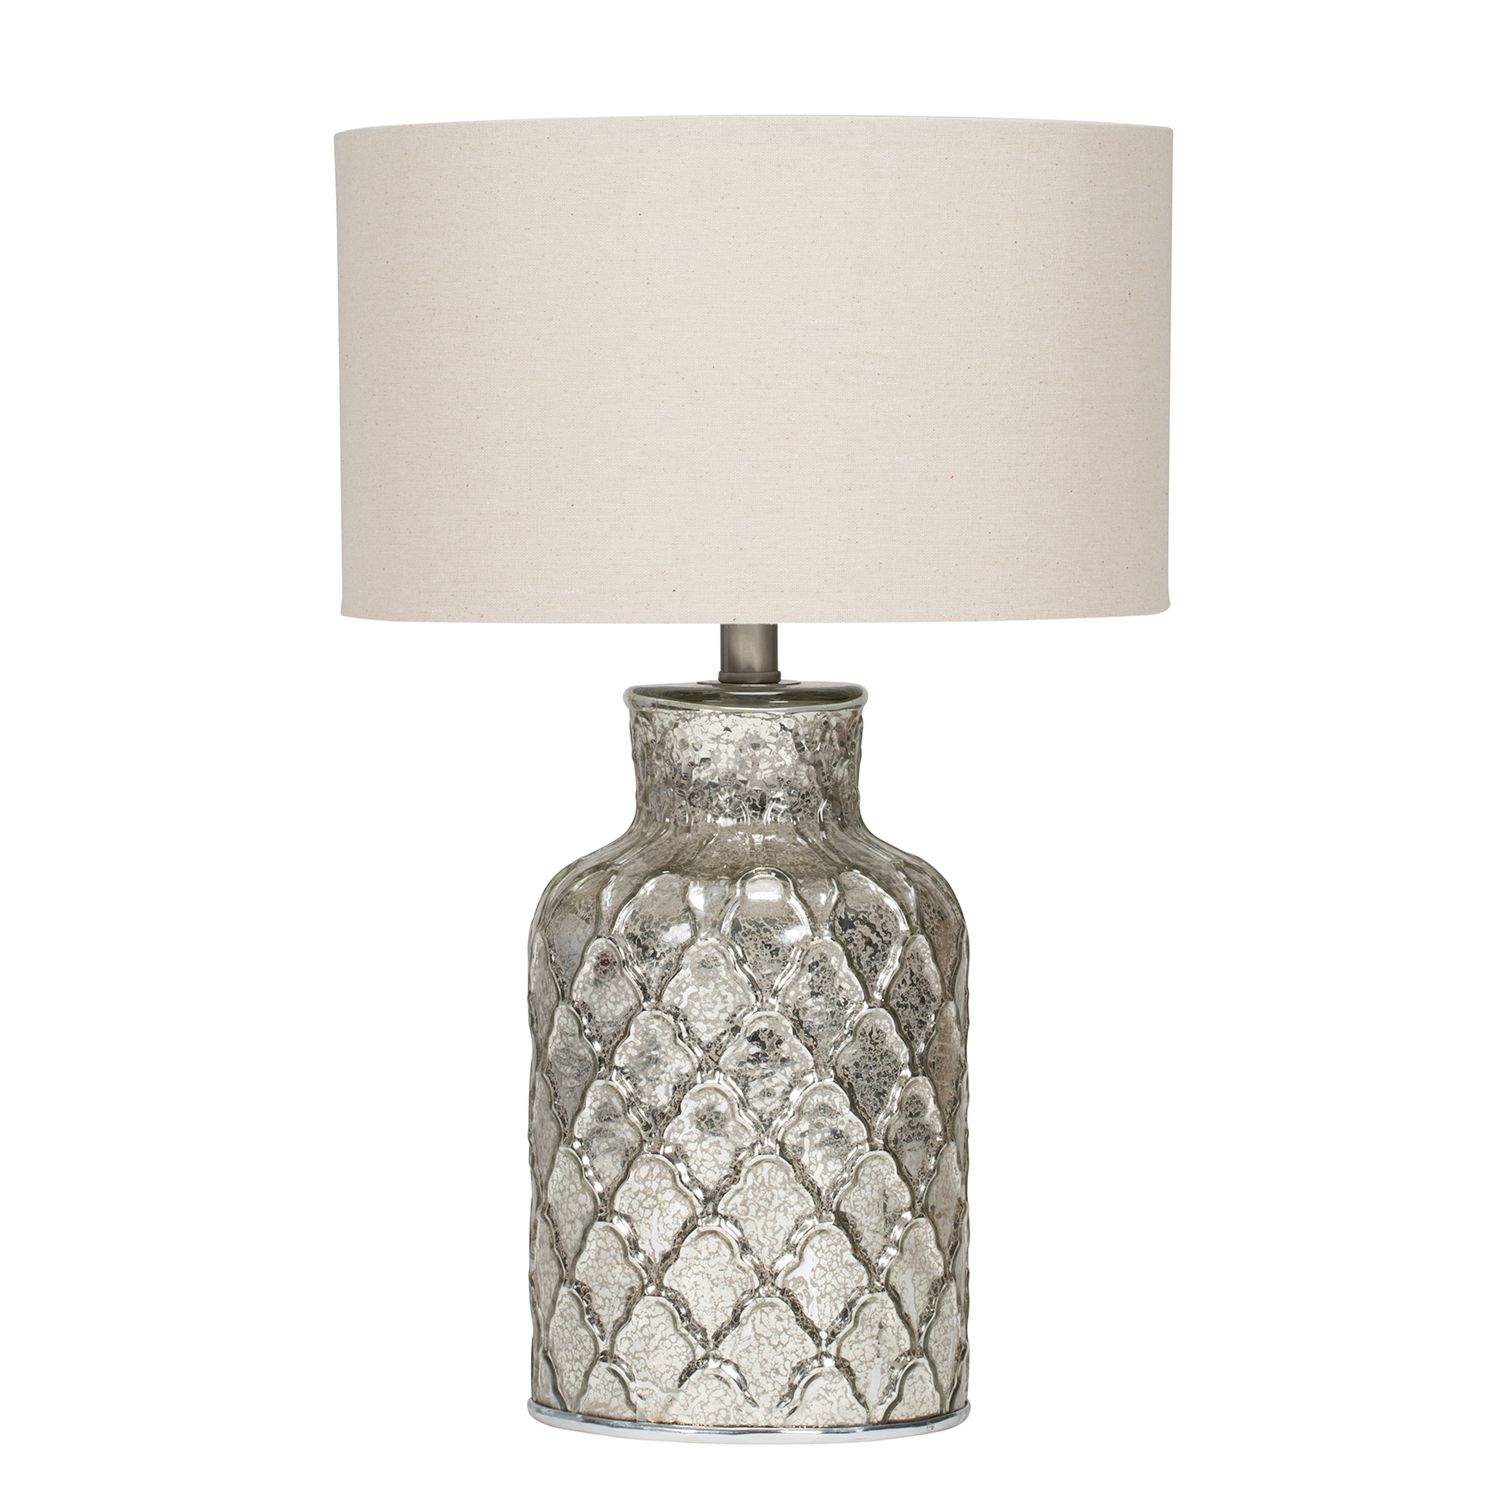 Darcy glass table lamp bedroom pinterest glass table lamps darcy glass table lamp aloadofball Choice Image